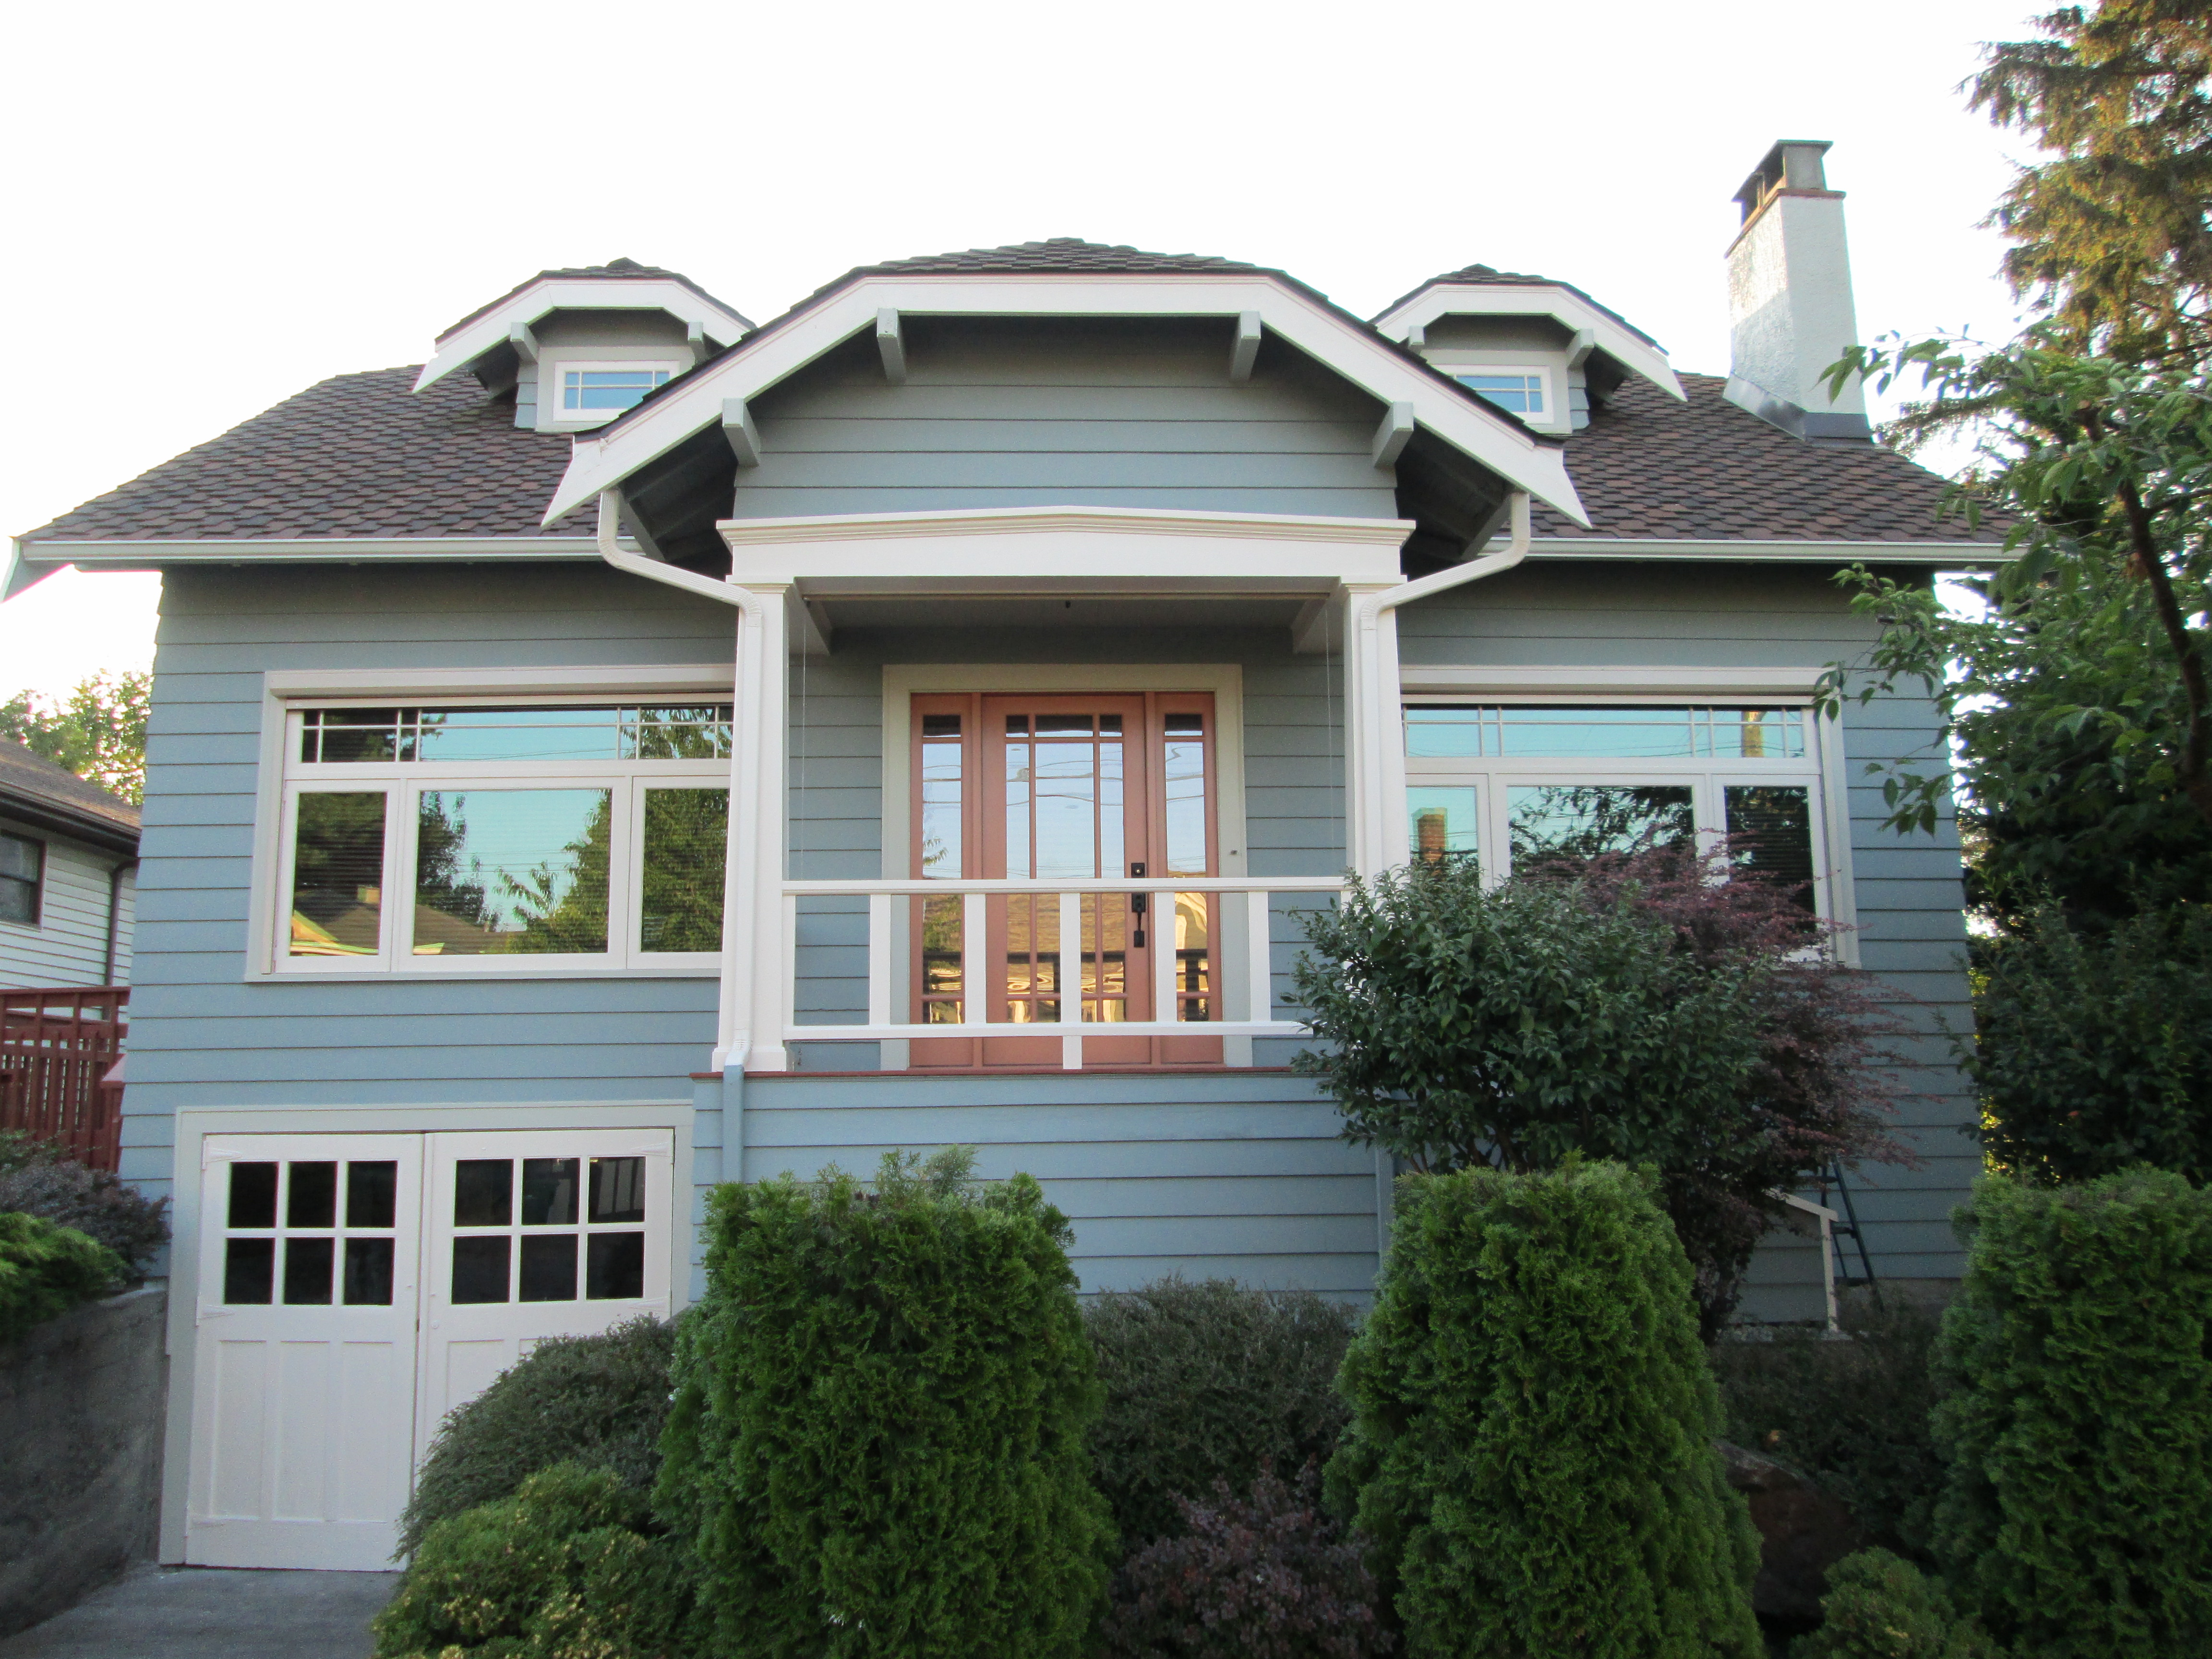 7 Tips For Selecting Exterior Colors And Features Banded Examination Of This Time Spun1